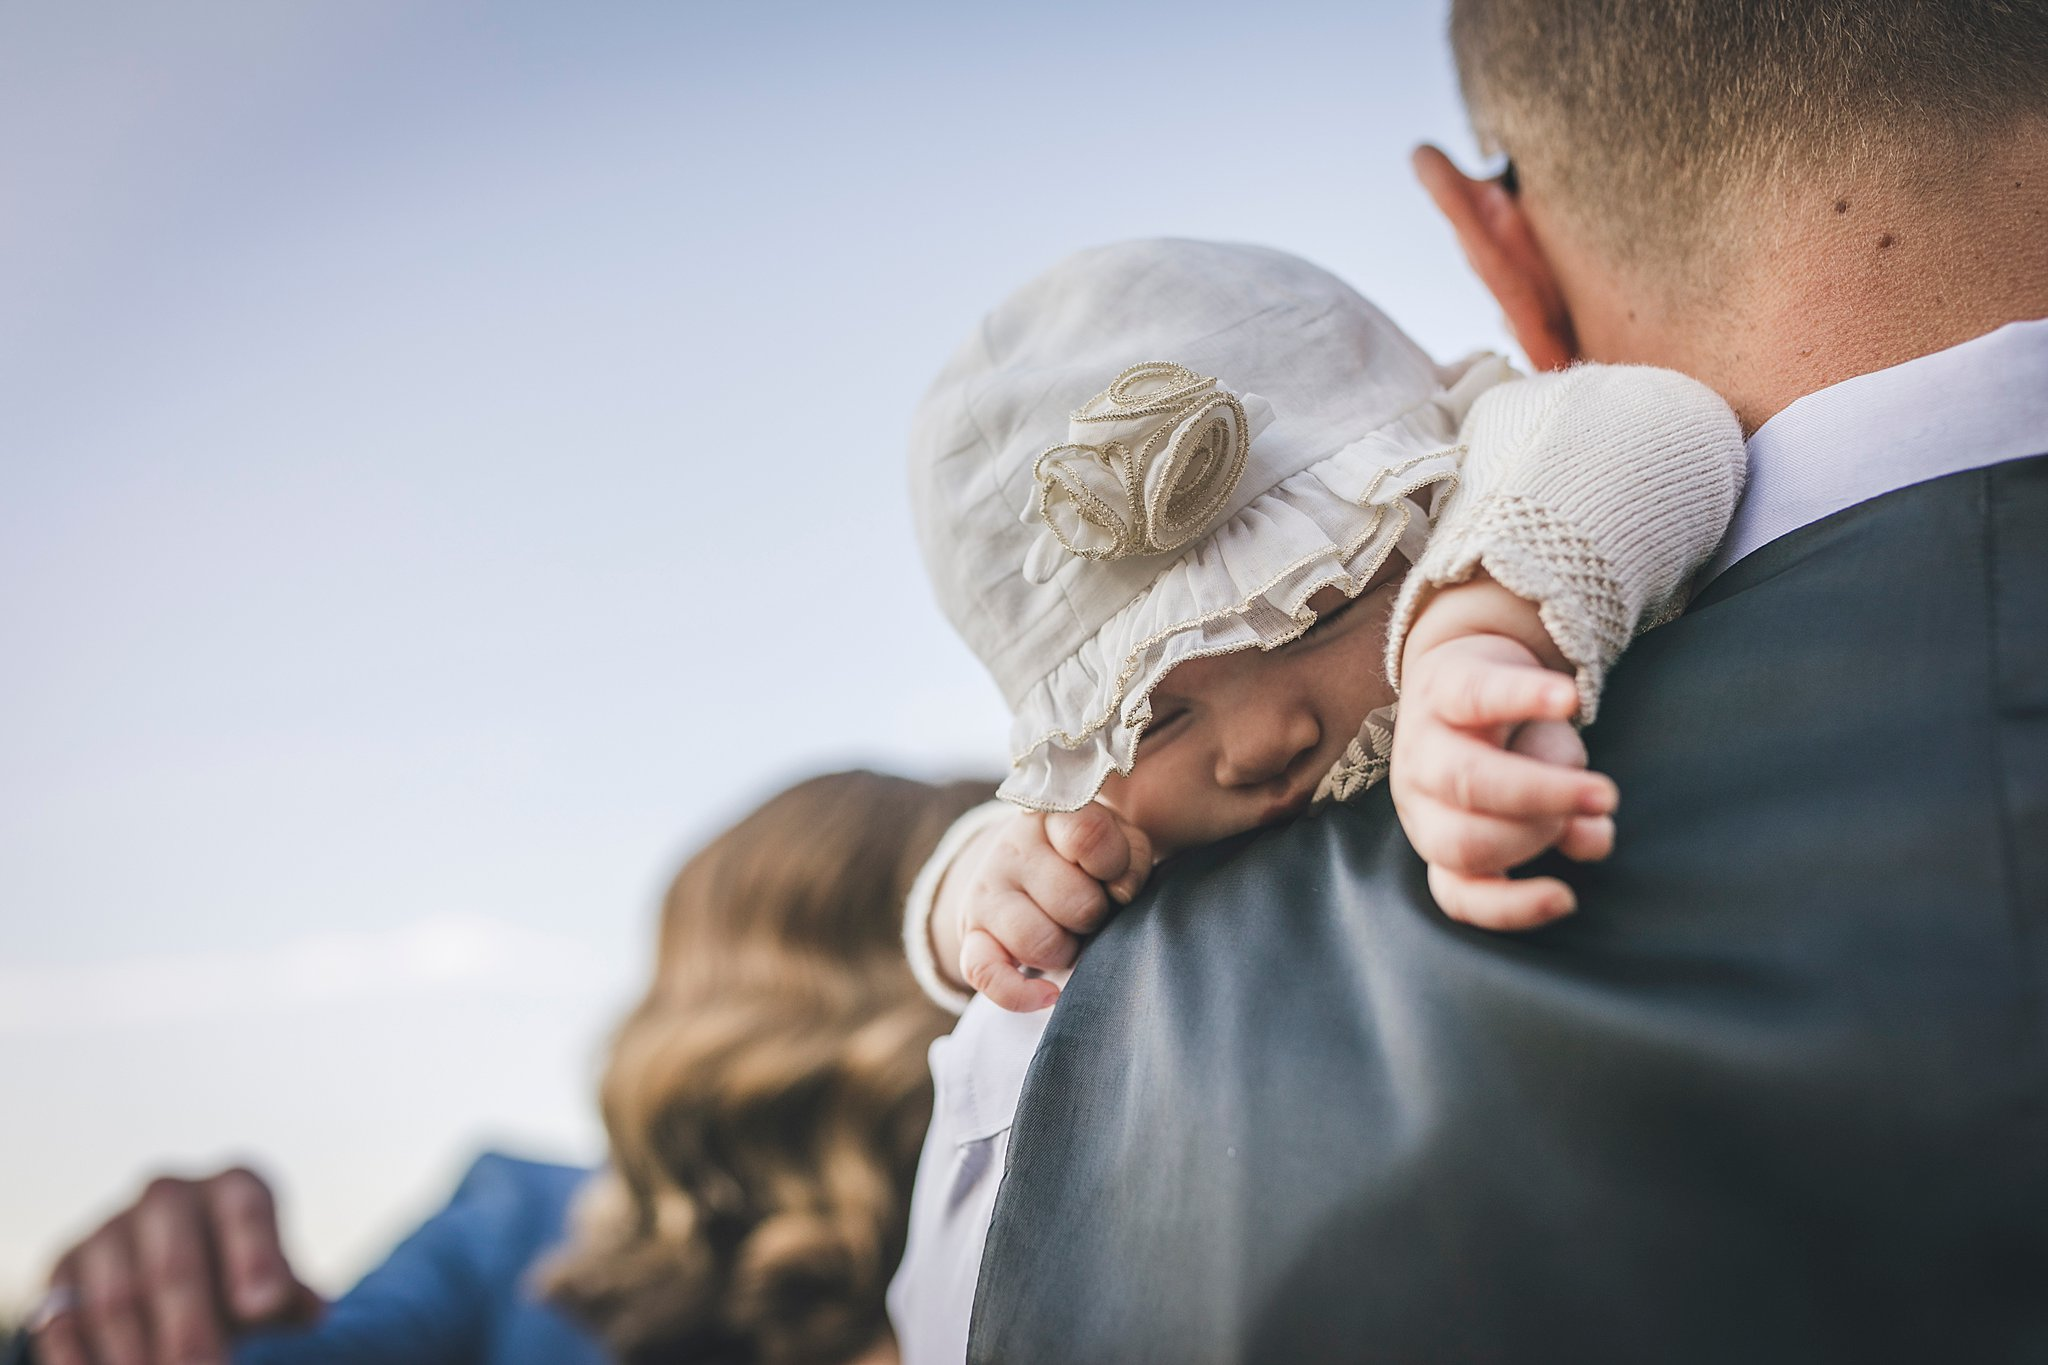 Groom and his infant daughter after their ceremony held in St. John's, Newfoundland